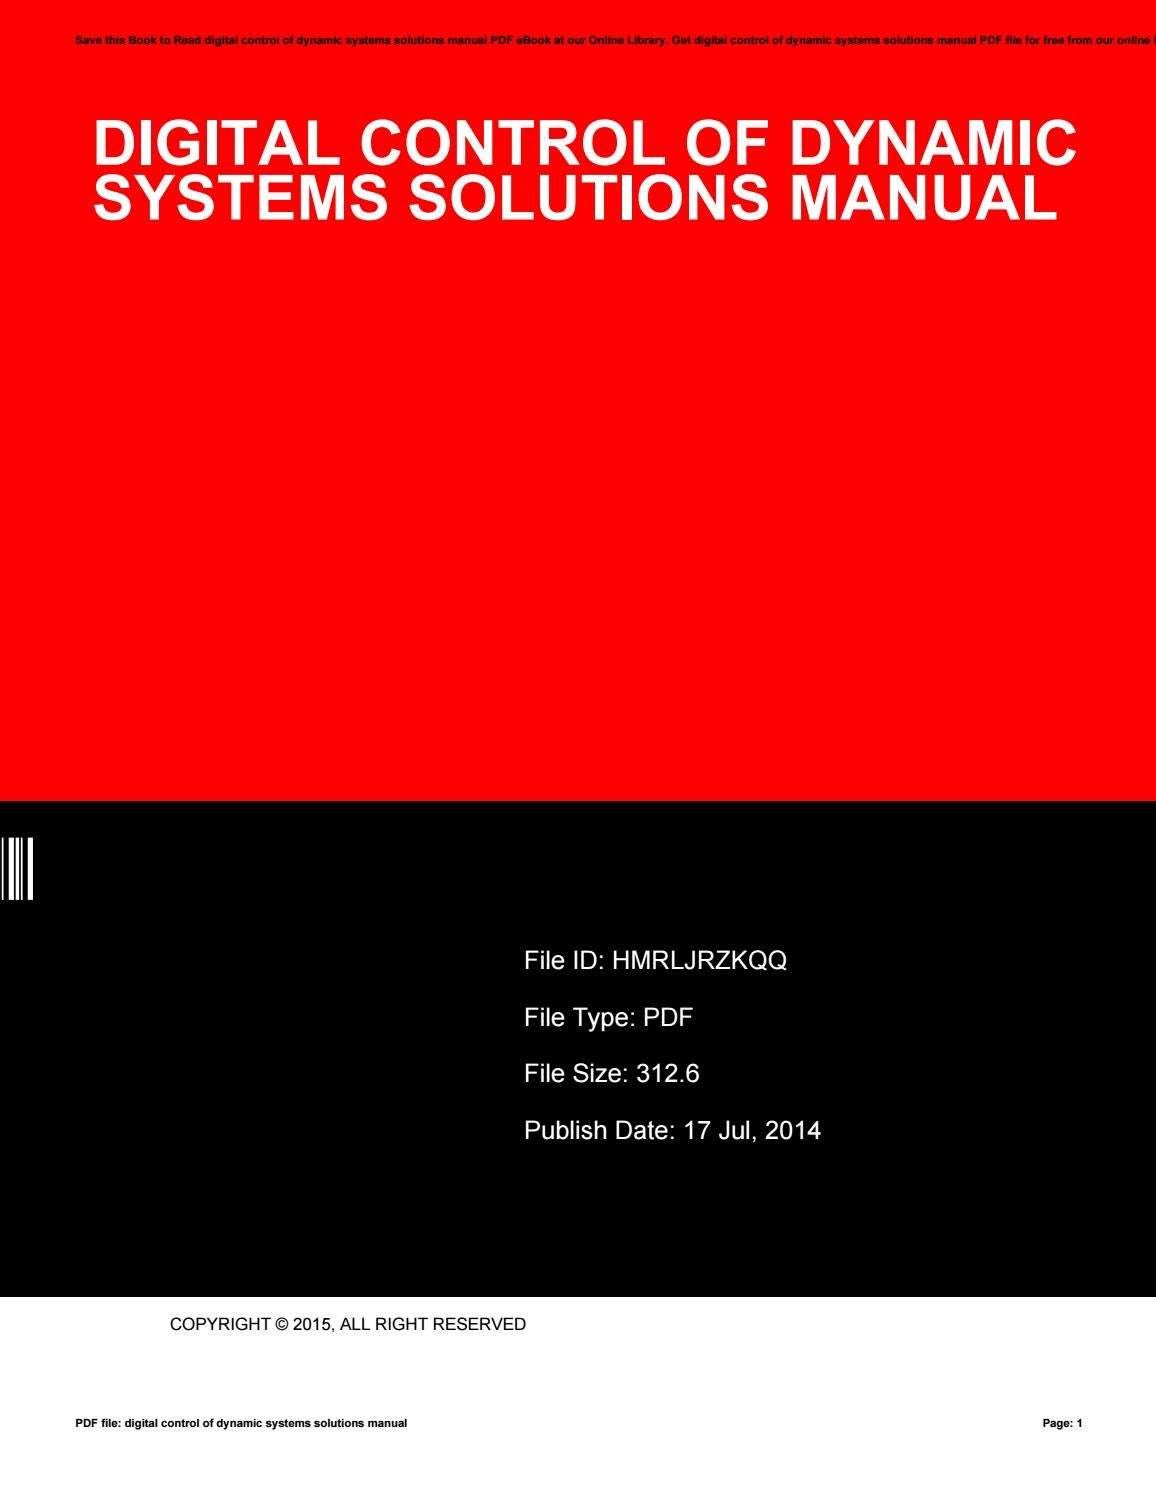 Digital control of dynamic systems solutions manual by PeterCallahan49651 -  issuu